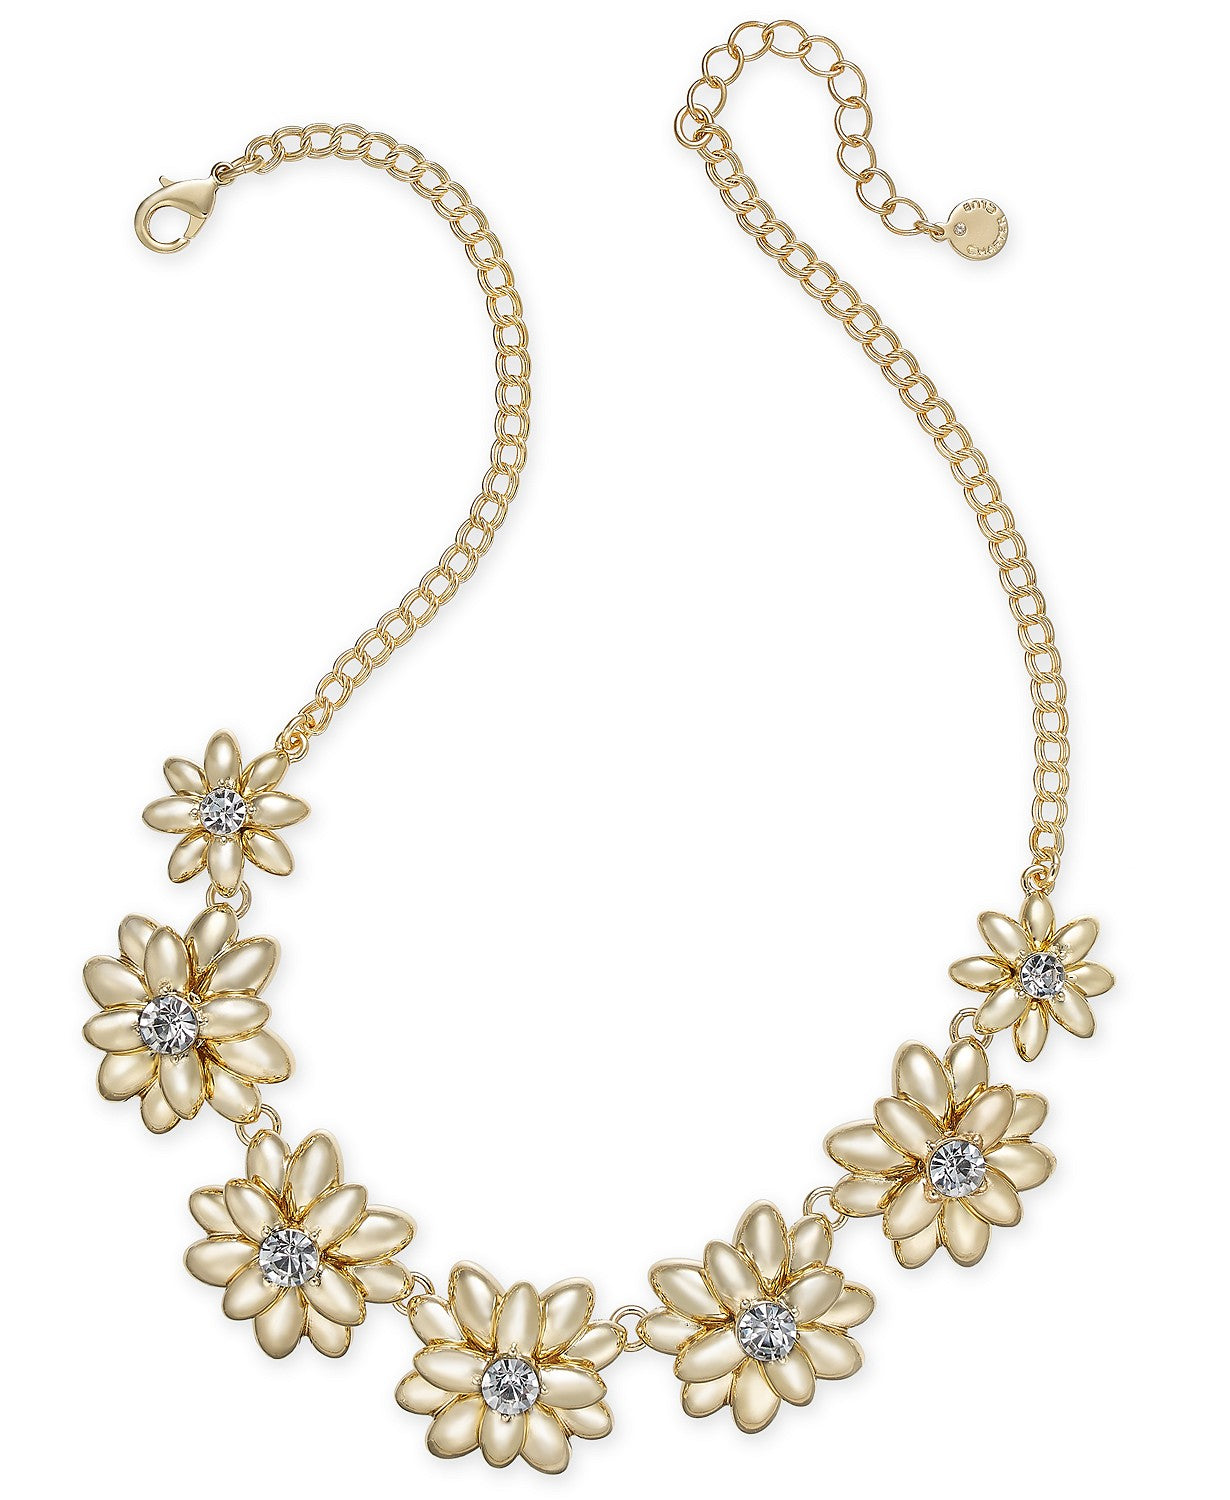 "Charter Club Gold-Tone Crystal & Stone Flower Statement Necklace, 17"" + 2"" extender"